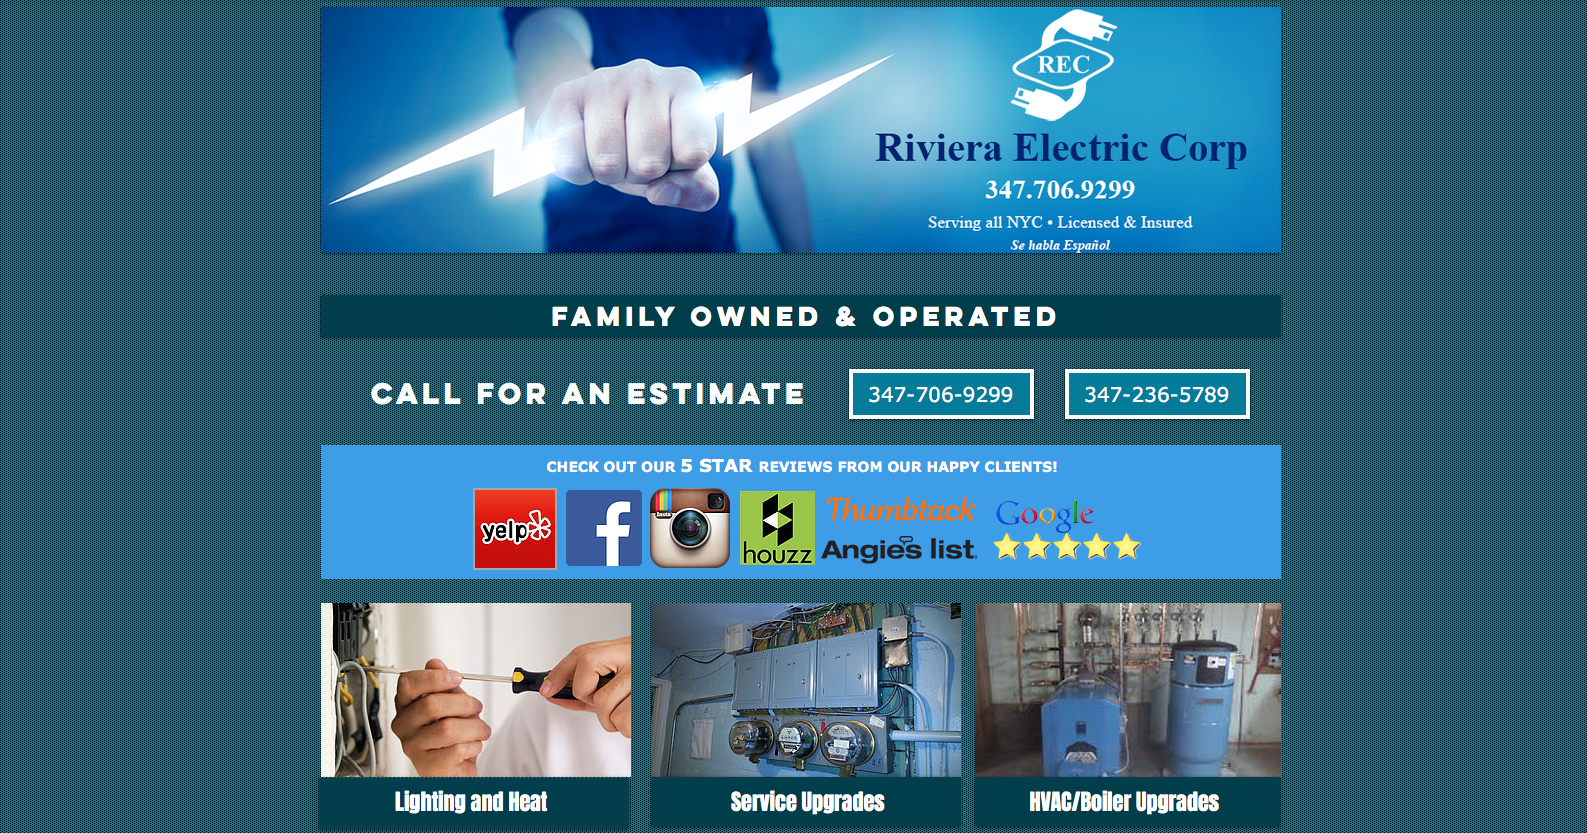 RIVIERA ELECTRIC